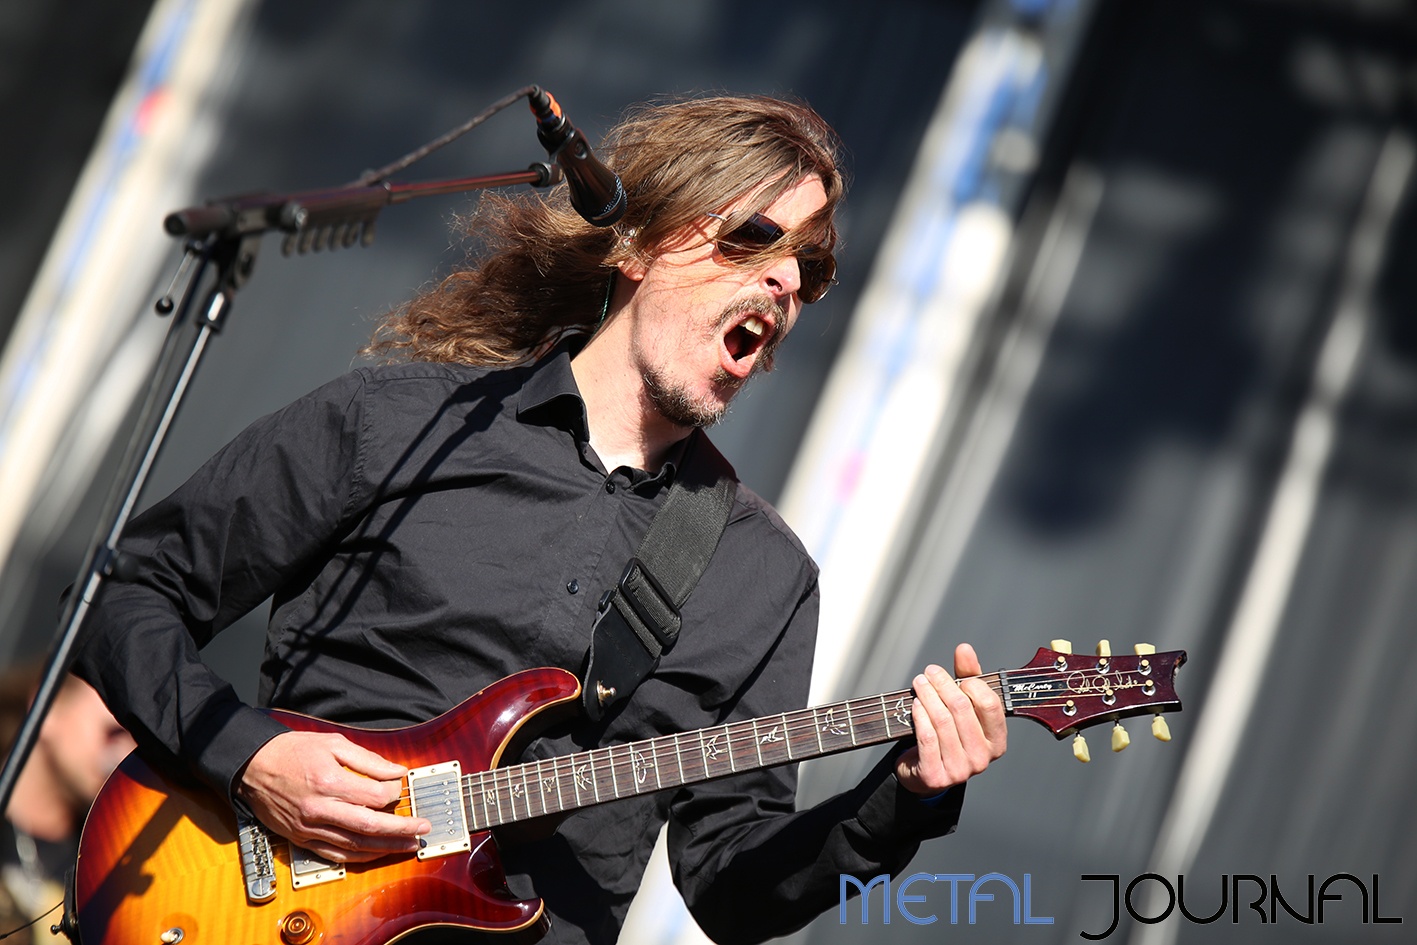 opeth metal journal rock the coast 2019 pic 4